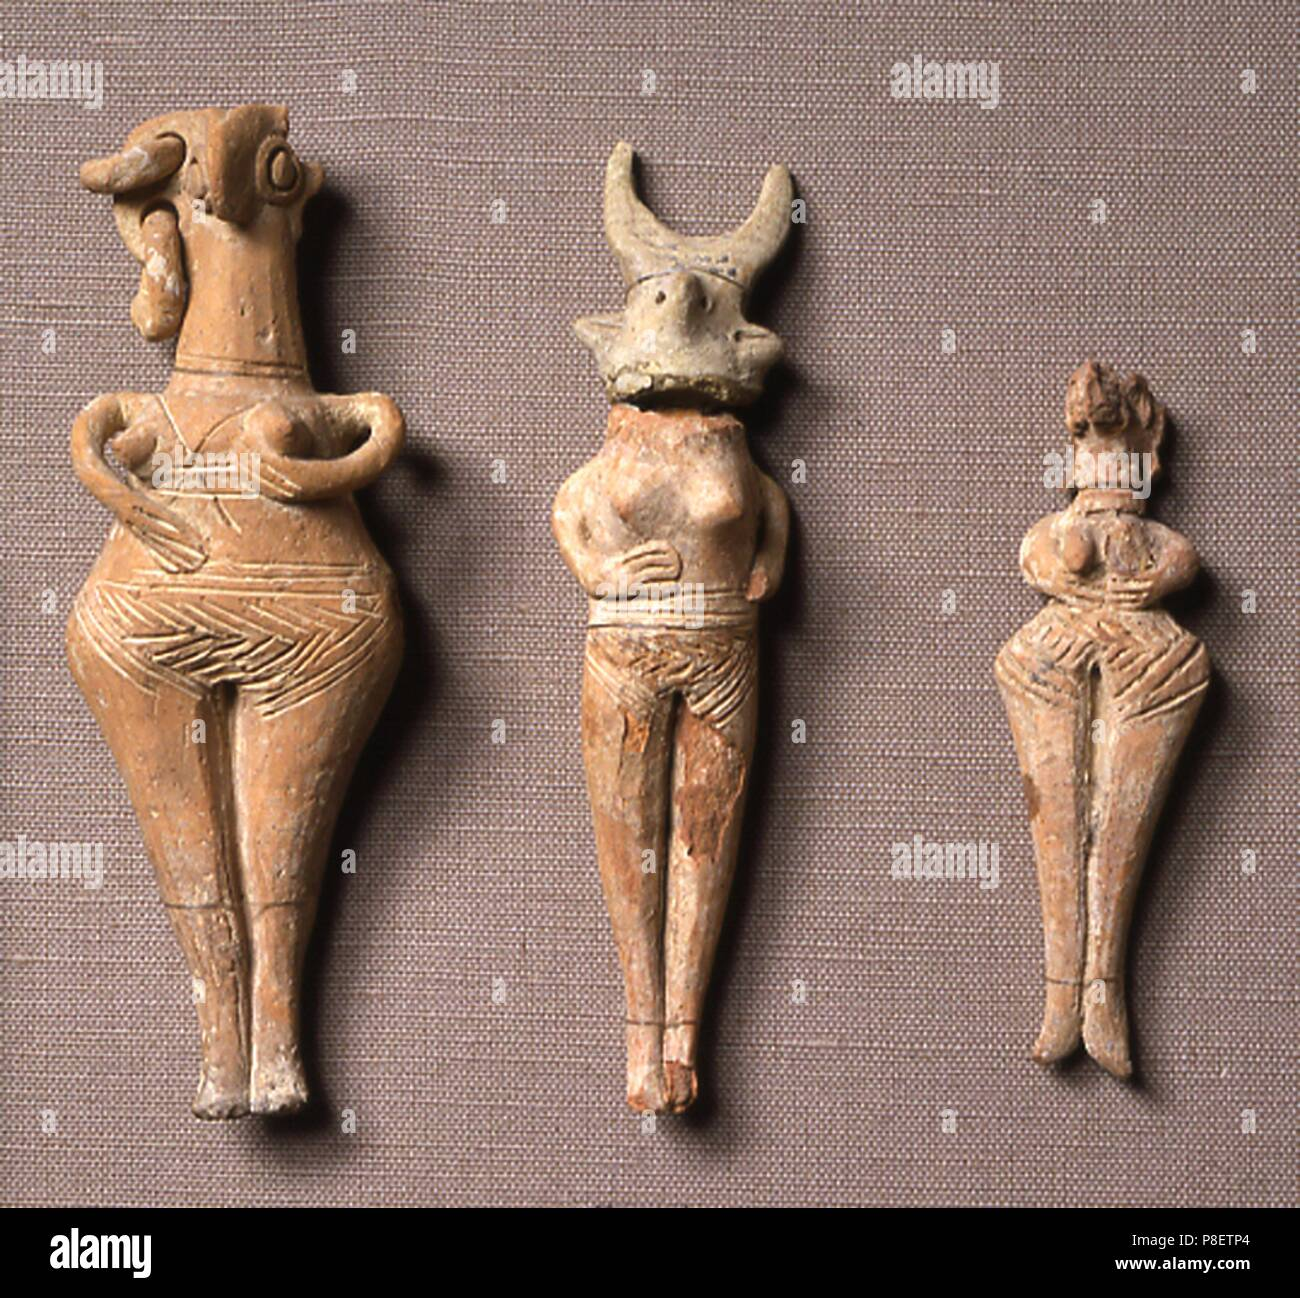 Anthropomorphic Trypillian clay figures. Museum: State History Museum, Moscow. Stock Photo